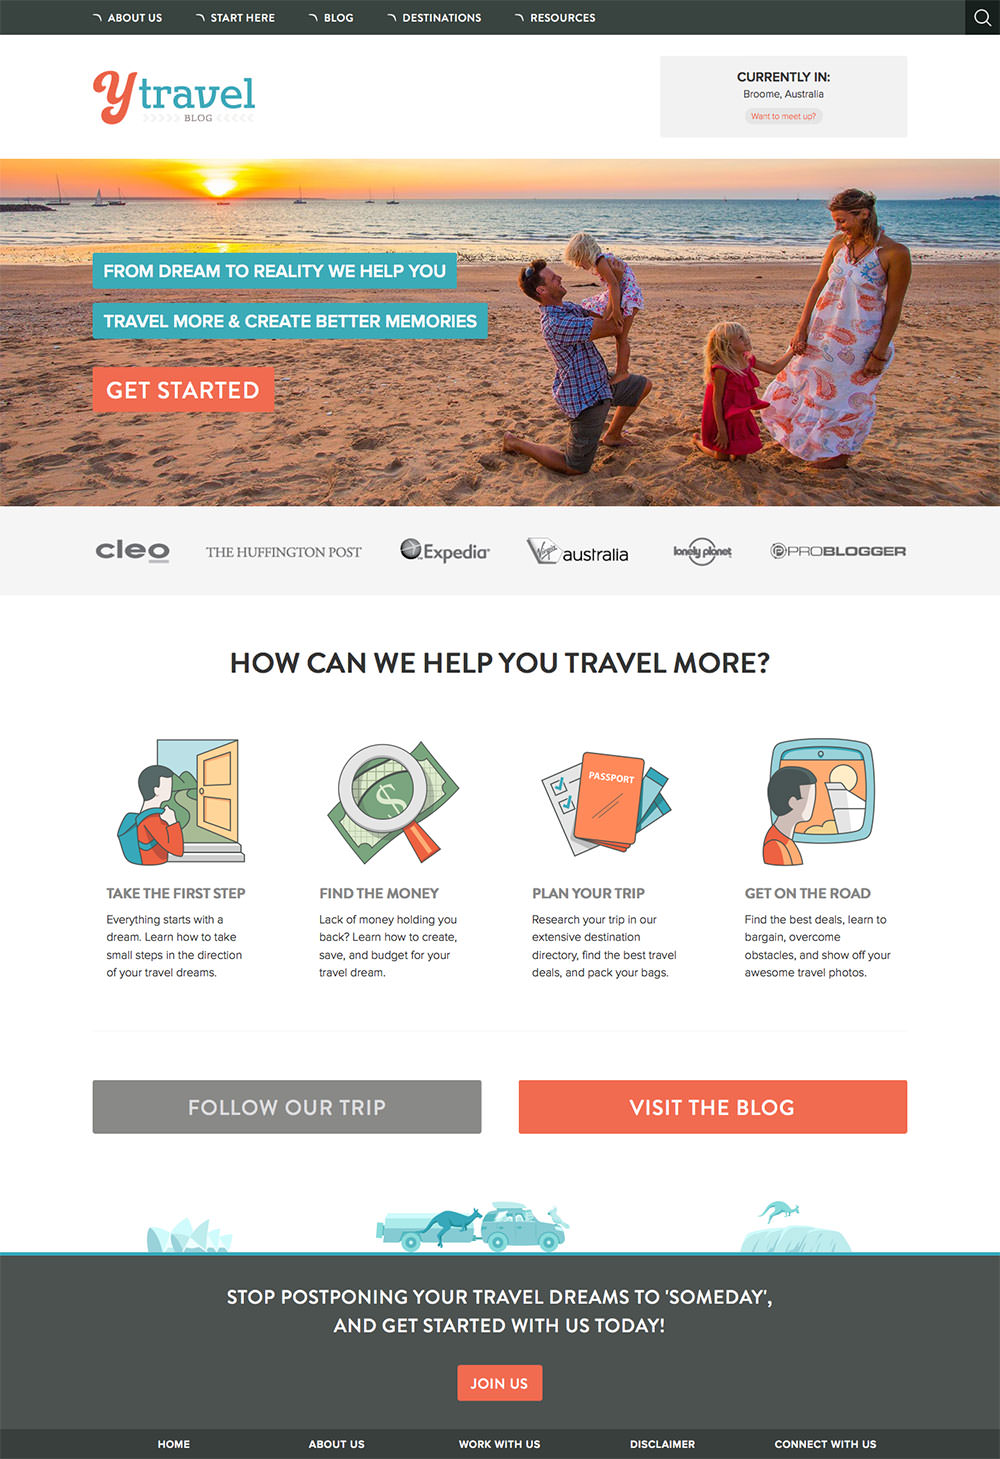 ytravelblog-homepage-design-user-experience